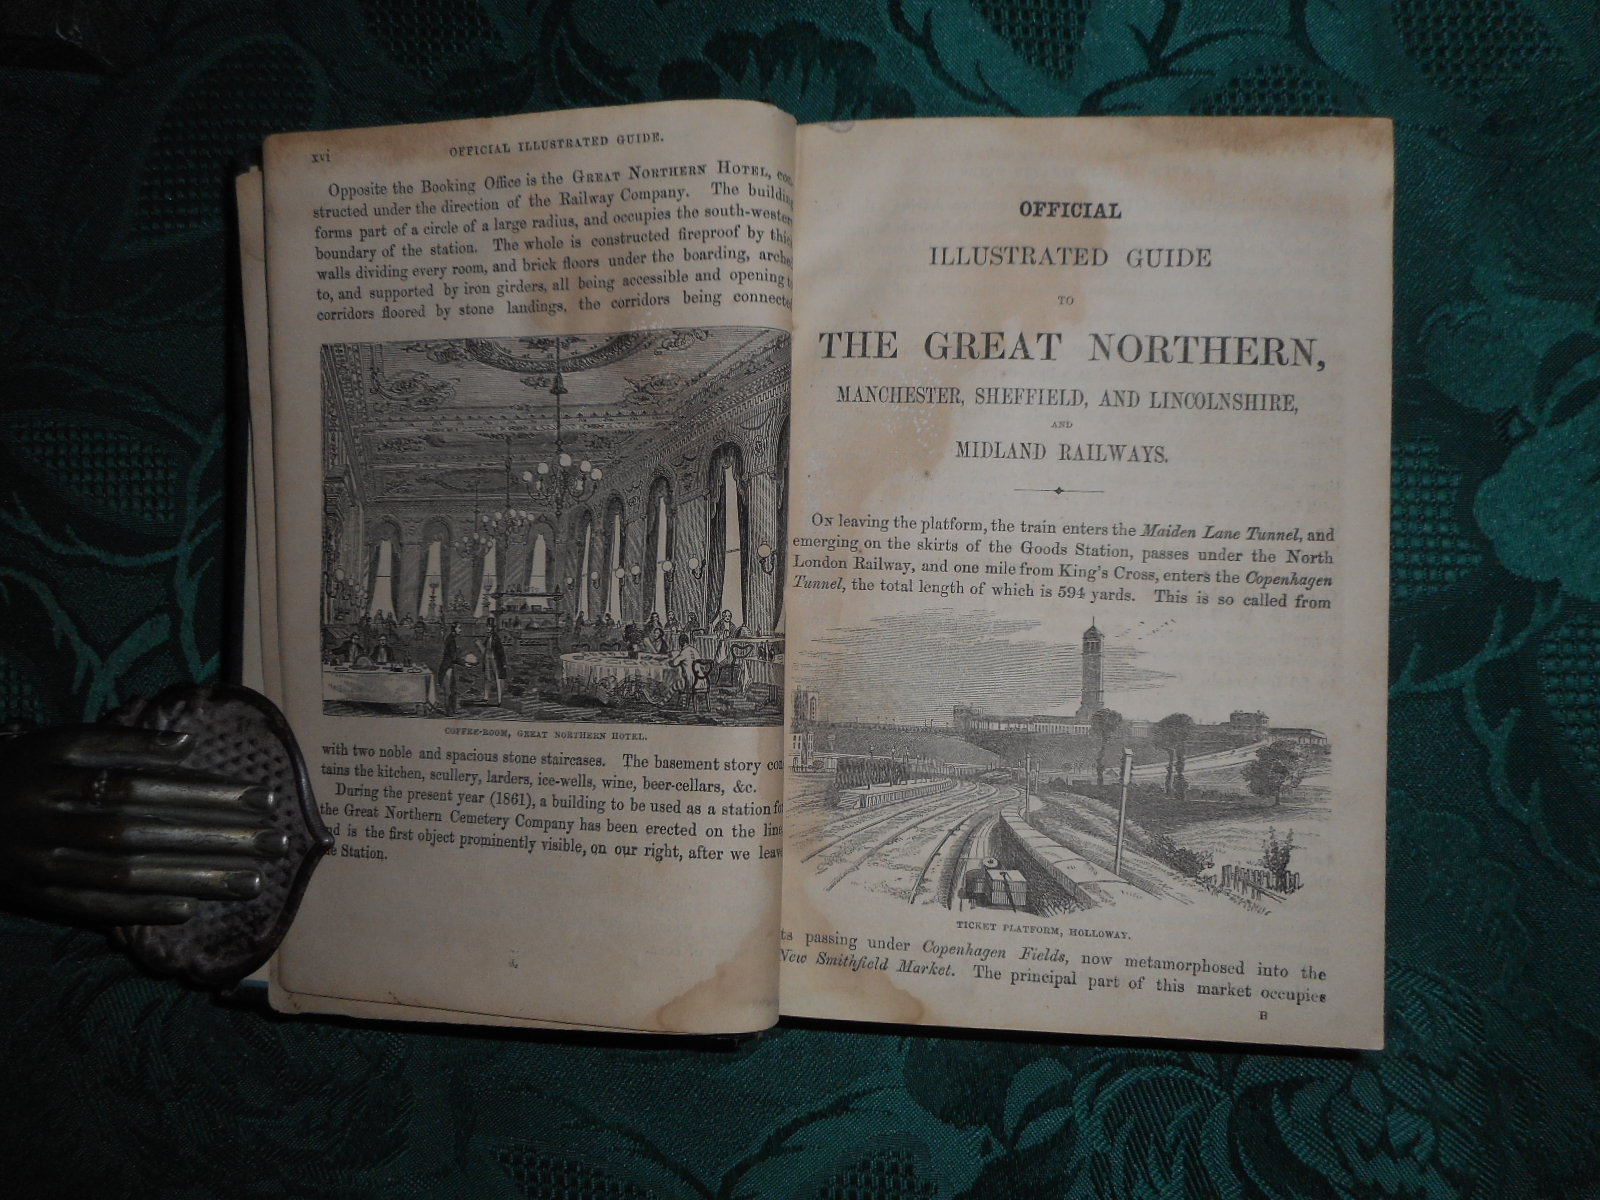 Image for The Official Illustrated Guide to the Great Northern Railway Including the Manchester, Sheffield, and Lincolnshire, and Midland Railways With Descriptions of the Most Important Manufactories in the Large Towns on the Lines... Embellished with 250 Engravings